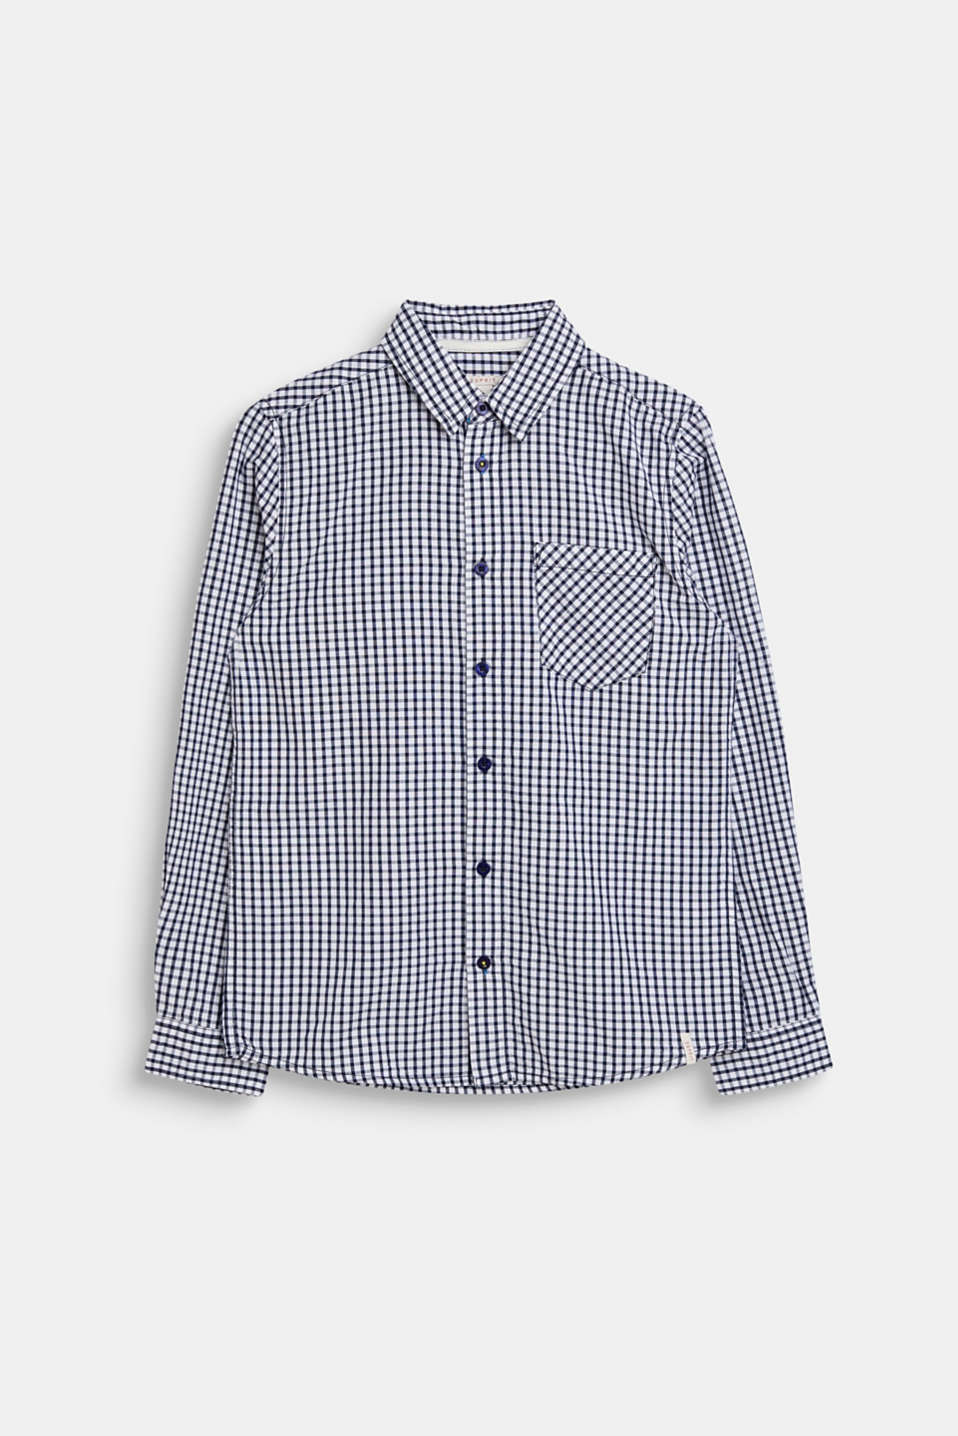 Esprit - Shirt with a check pattern, 100% cotton